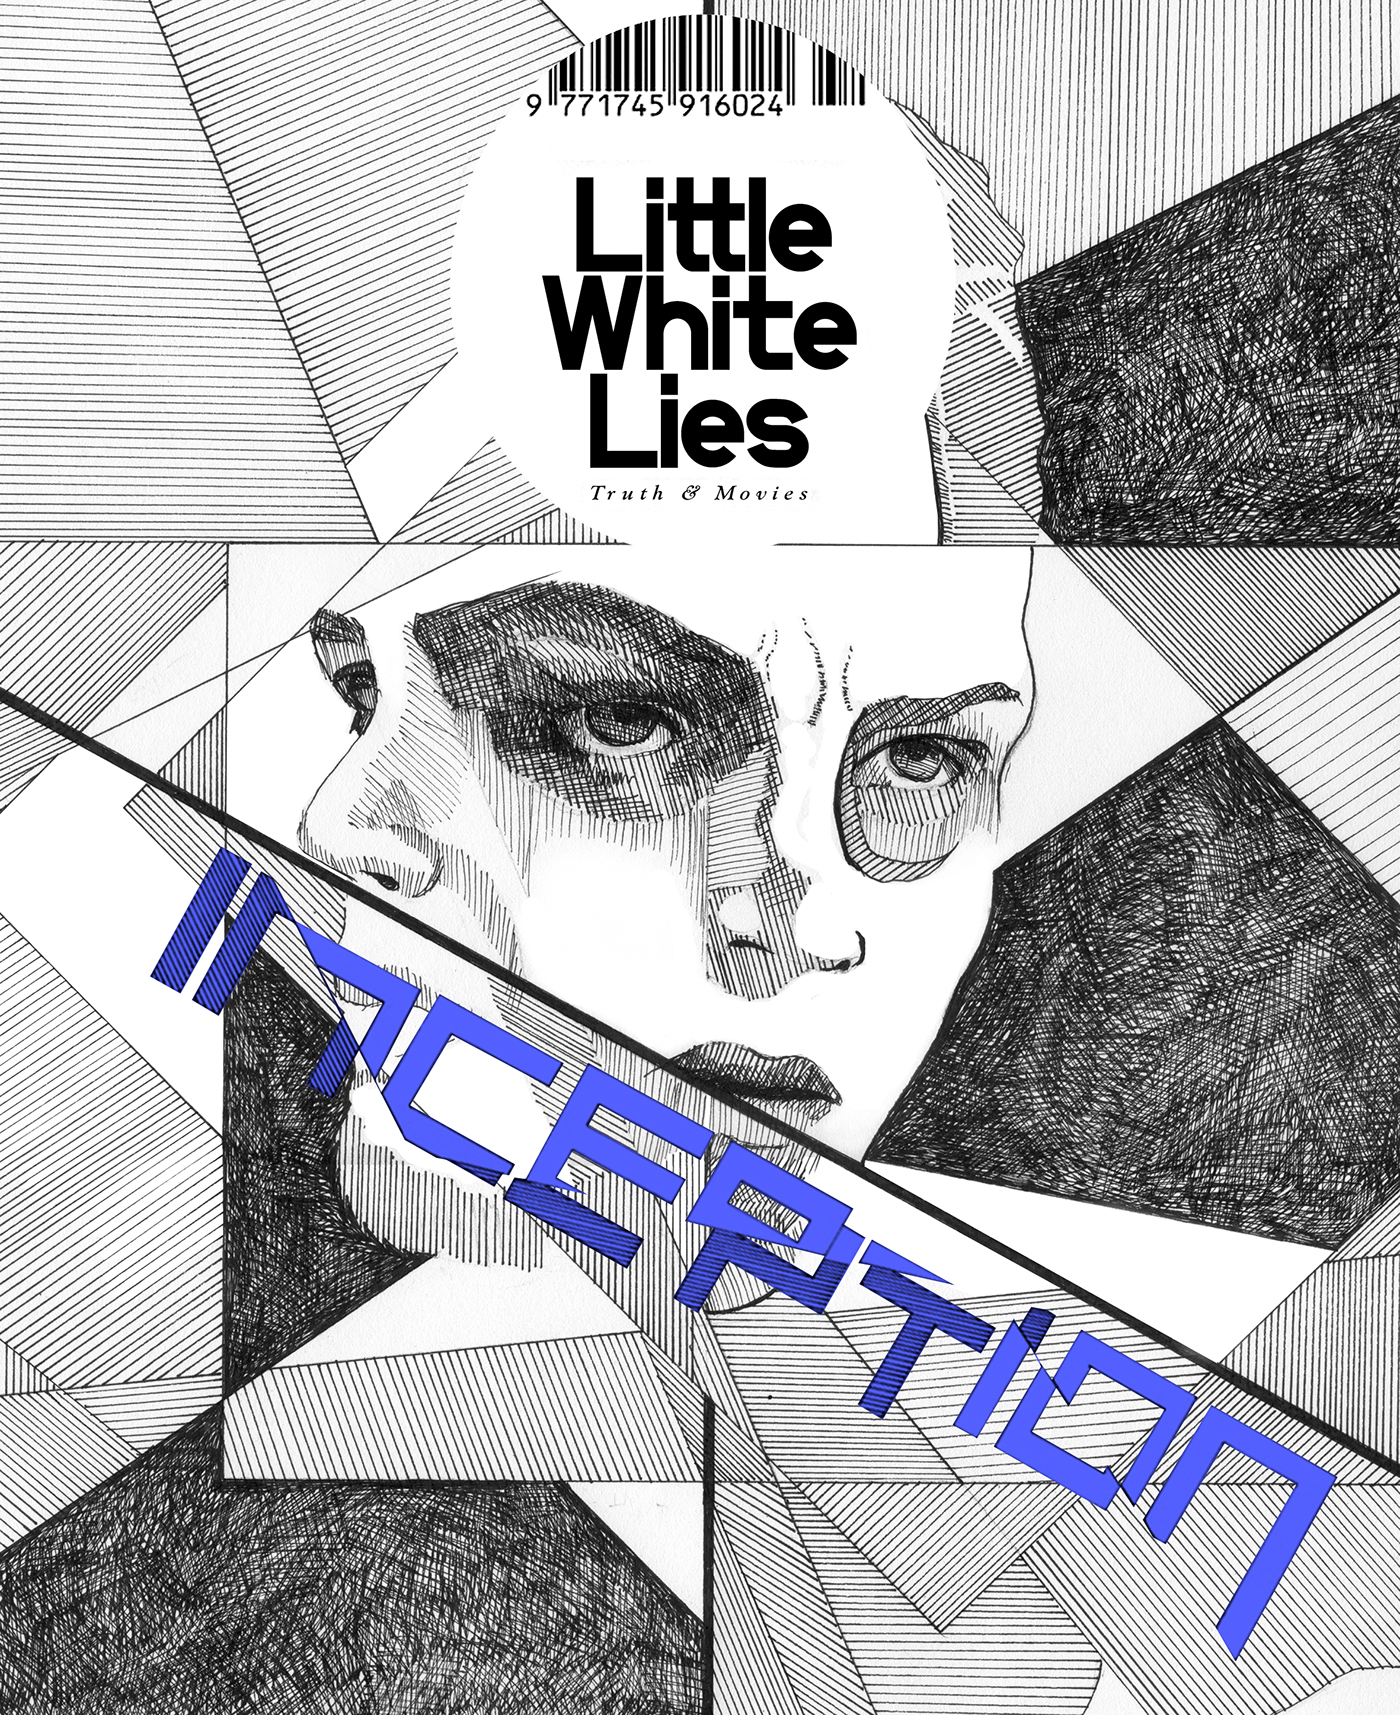 small and big white lies 2018-10-24 new album releases – download full albums, daily updates.